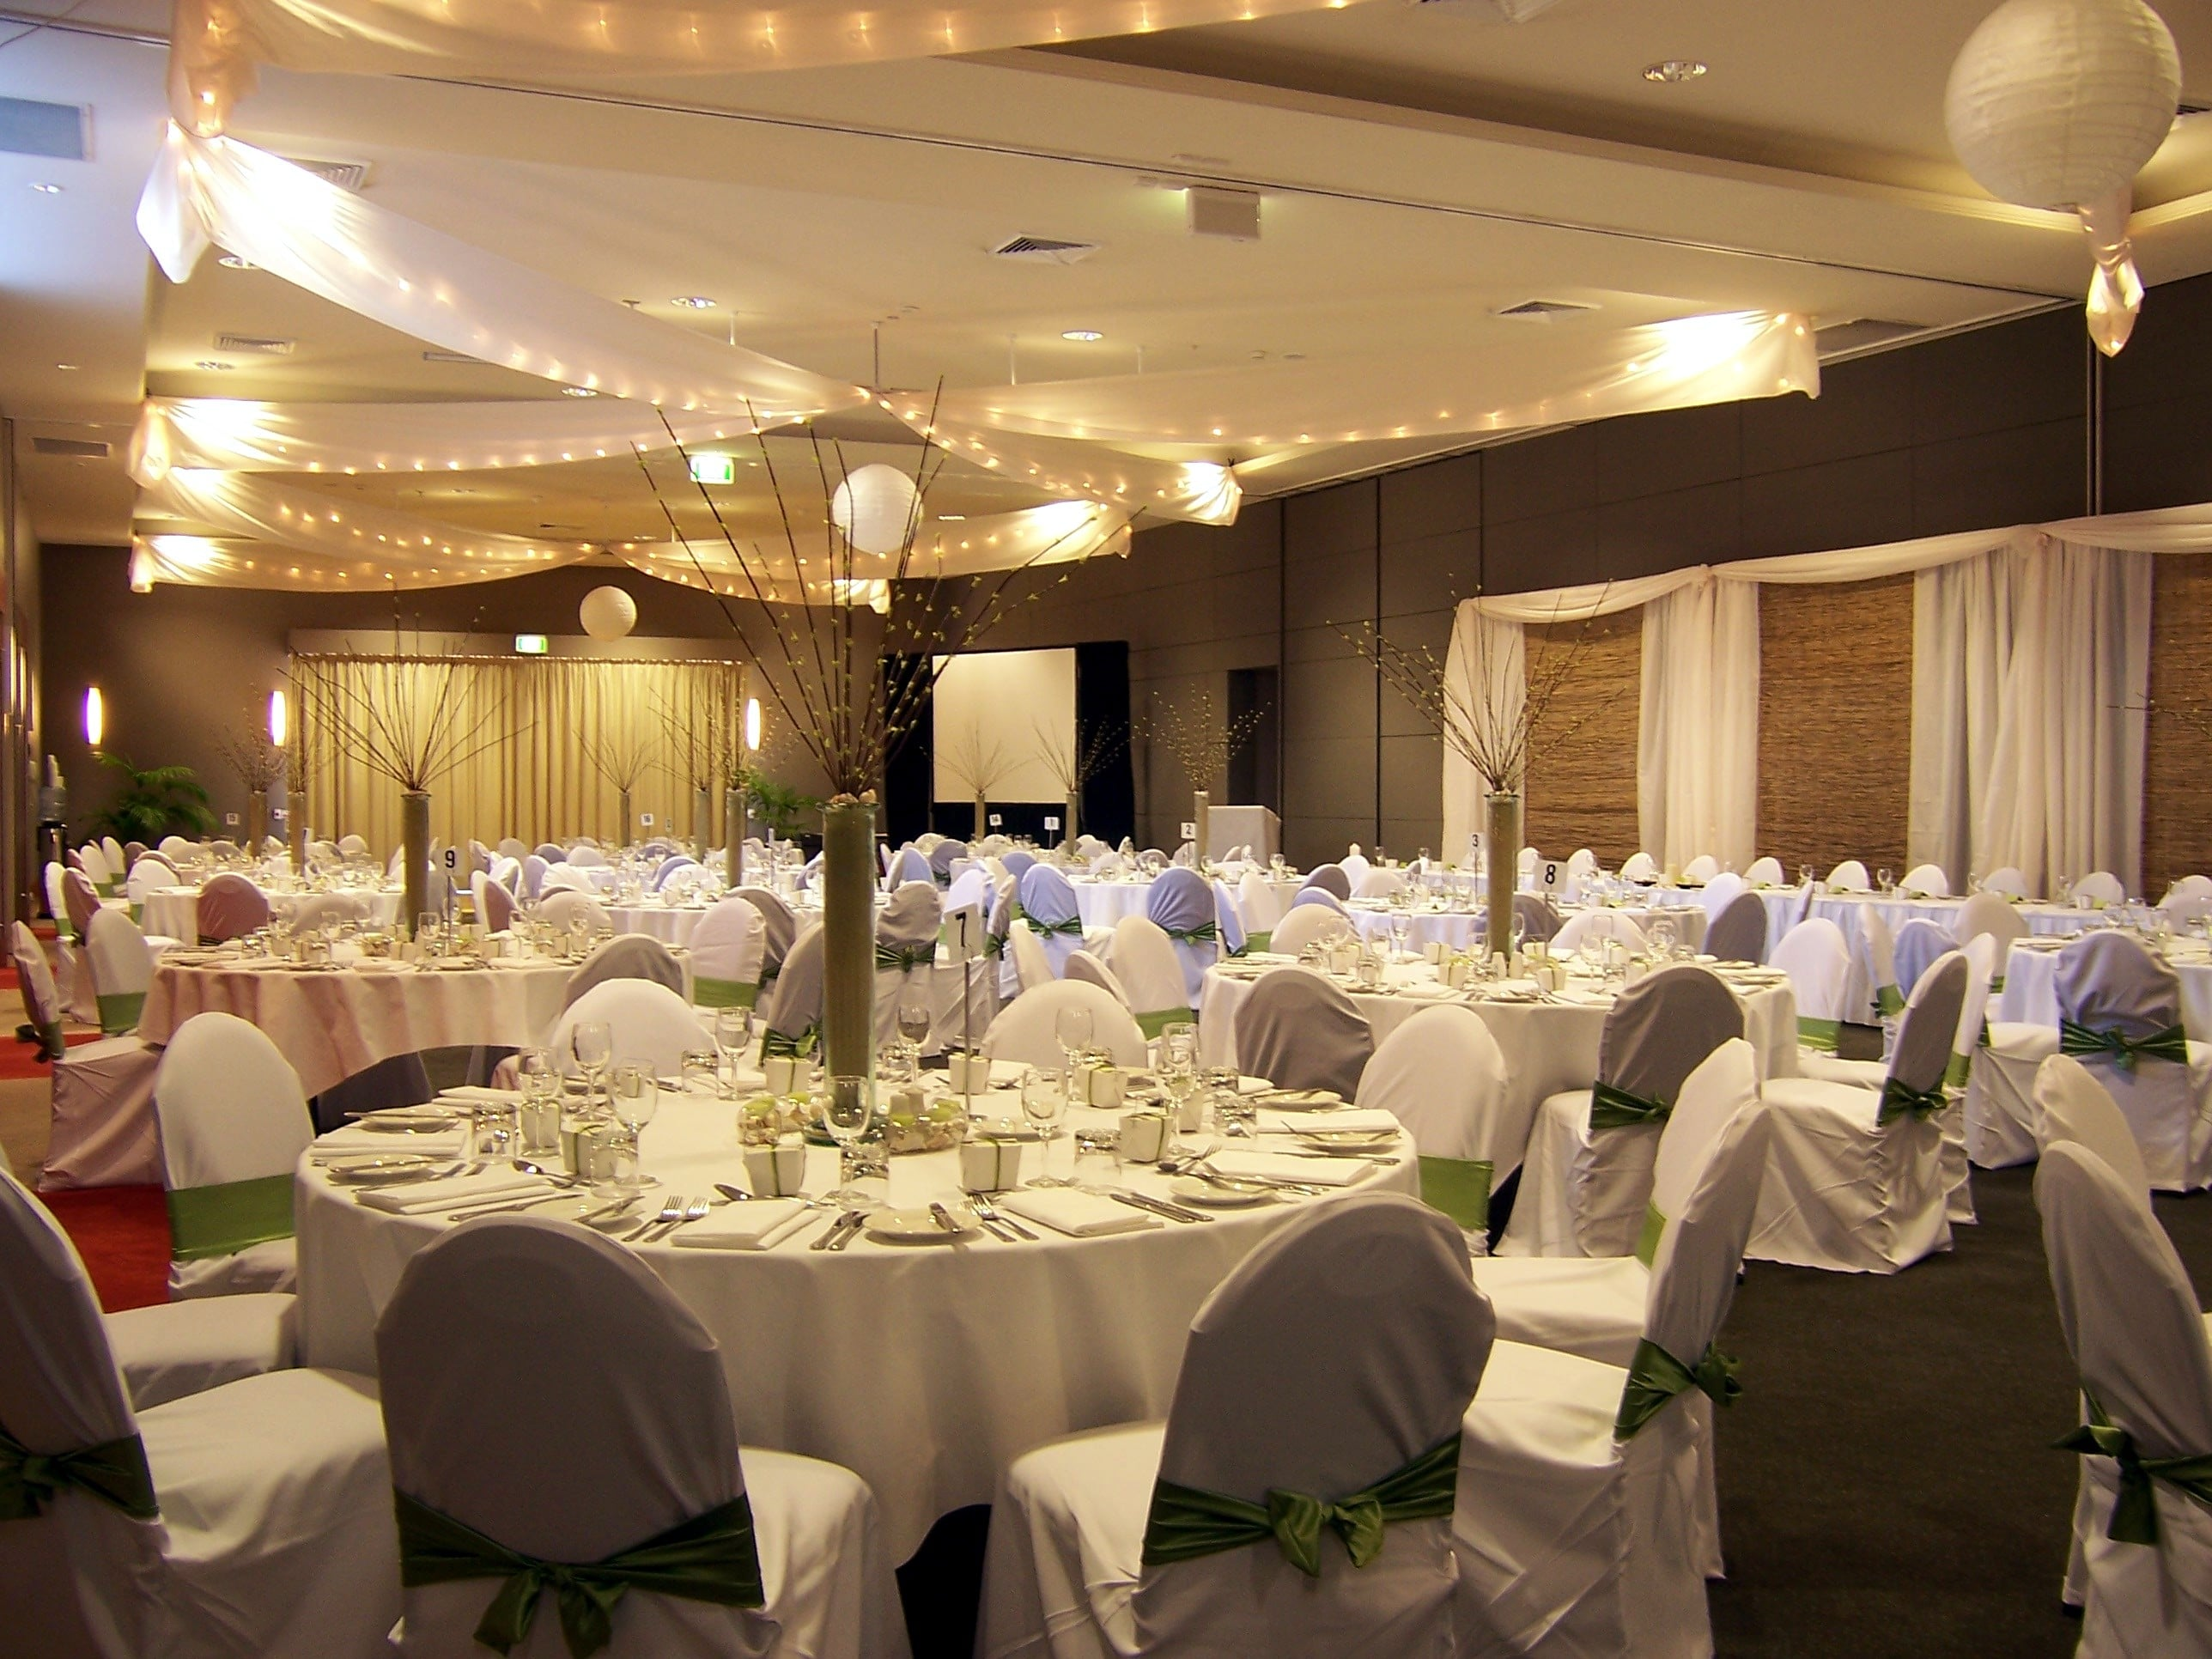 Star ceiling canopy lanterns chair covers bamboo backdrop Pacific Bay Resort